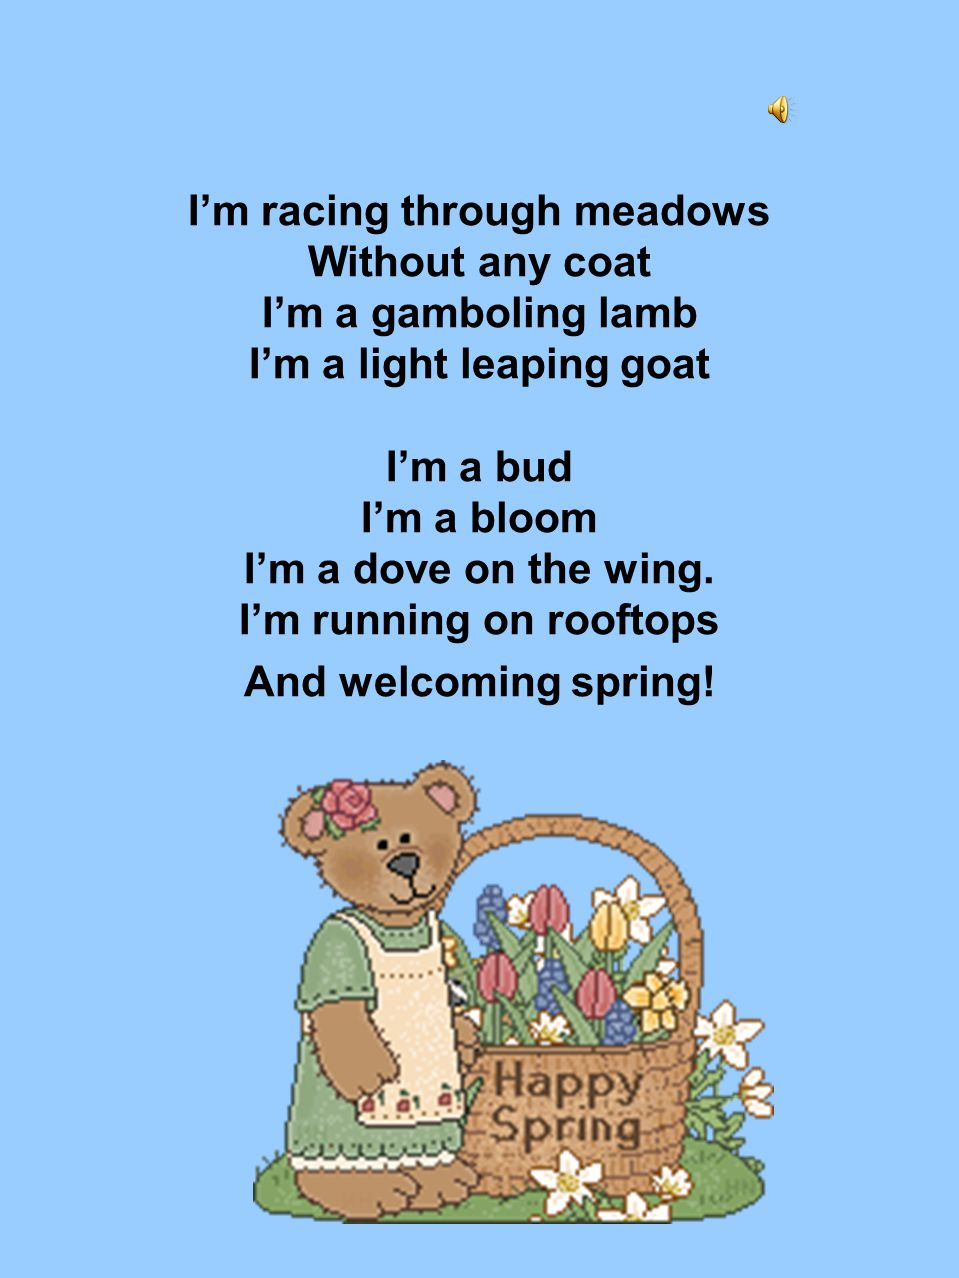 I'm racing through meadows Without any coat I'm a gamboling lamb I'm a light leaping goat I'm a bud I'm a bloom I'm a dove on the wing.